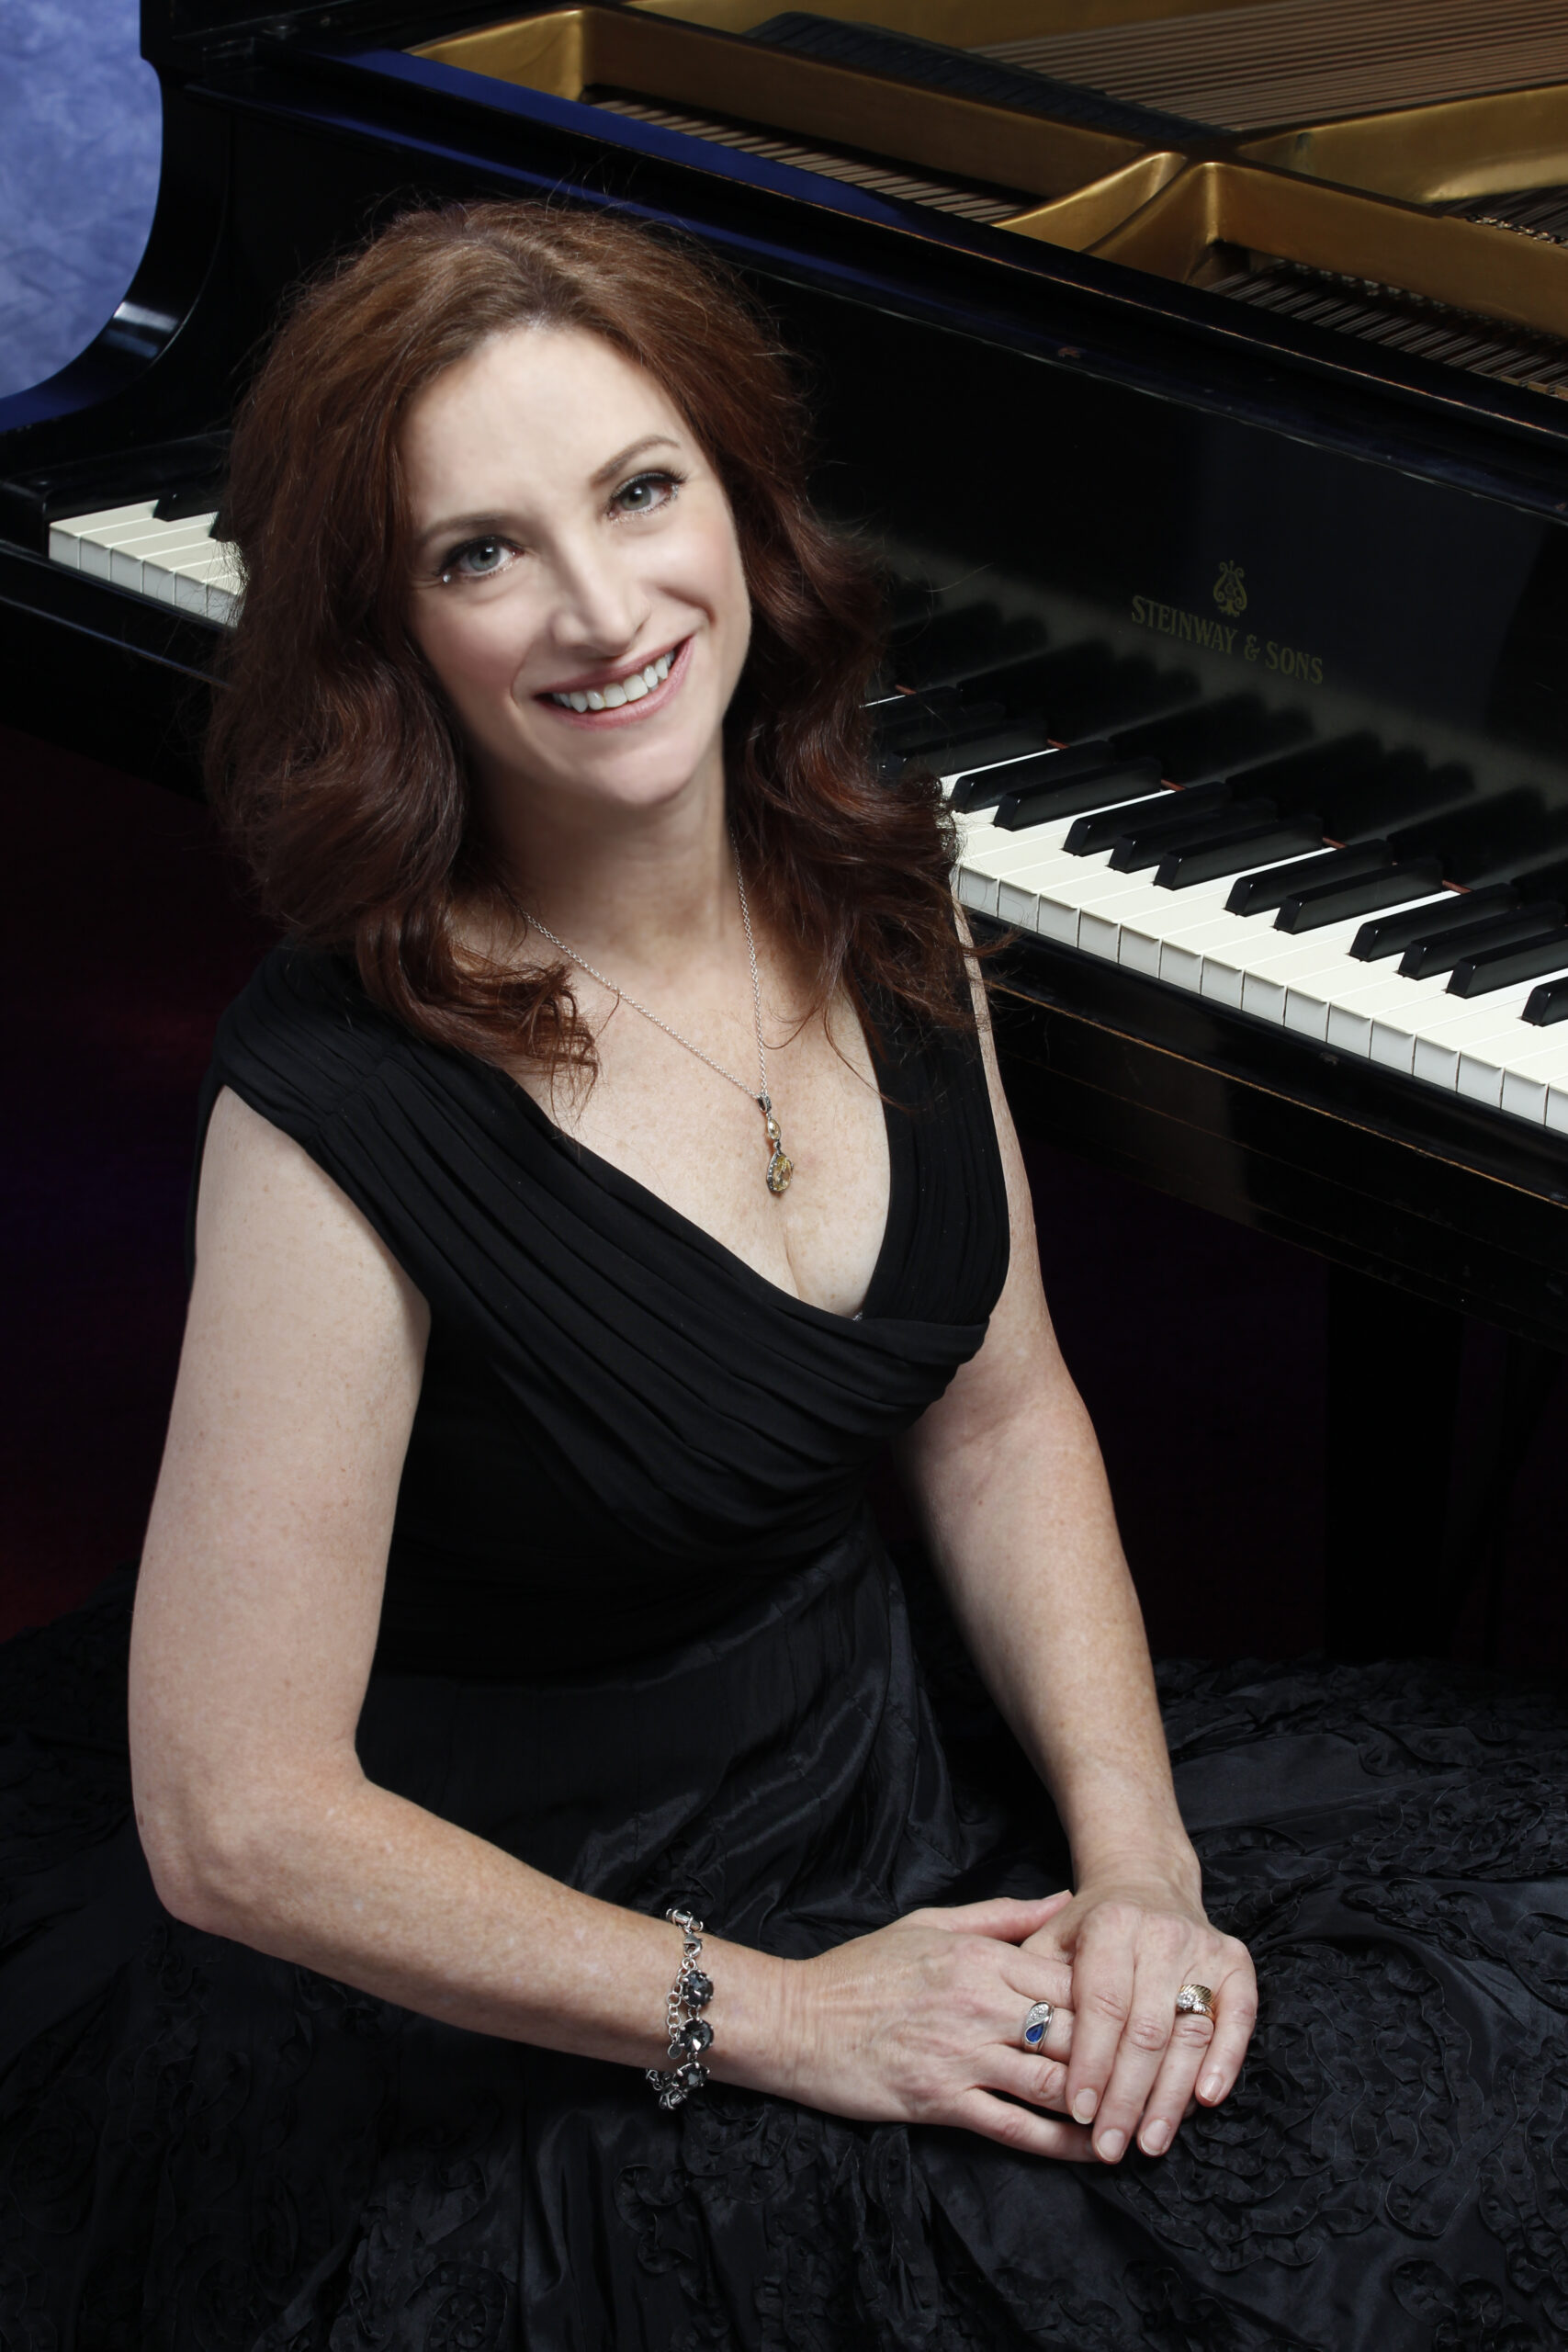 Robin Spielberg standing in front of a piano